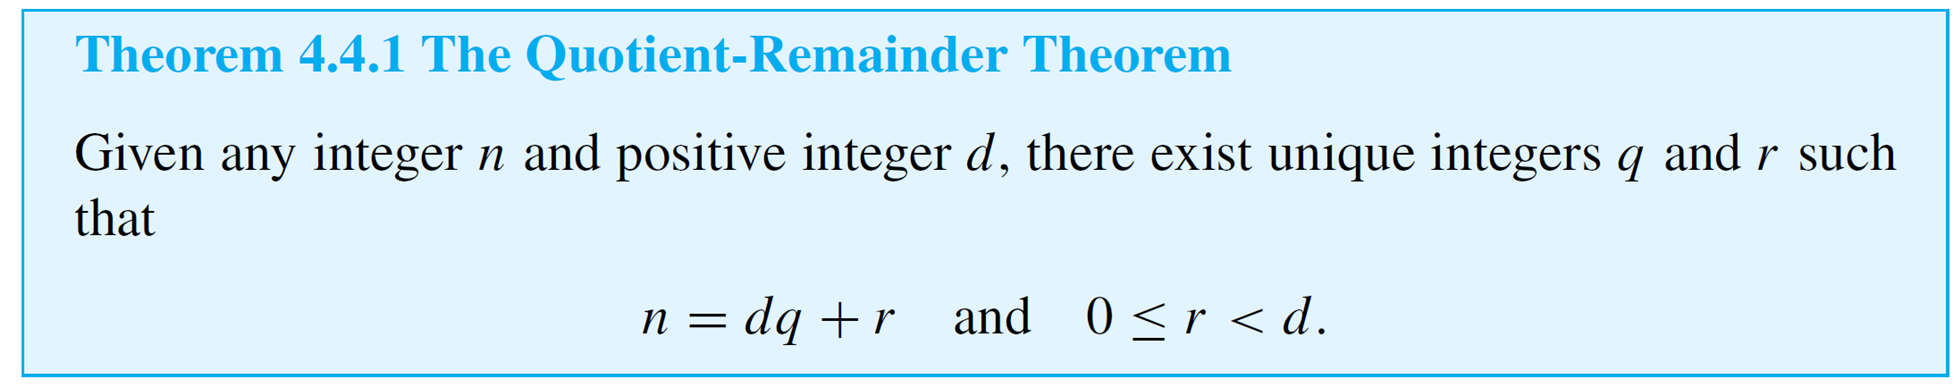 Direct Proof and Counterexample IV: Division into Cases and the Quotient-Remainder Theorem The quotient-remainder theorem says that